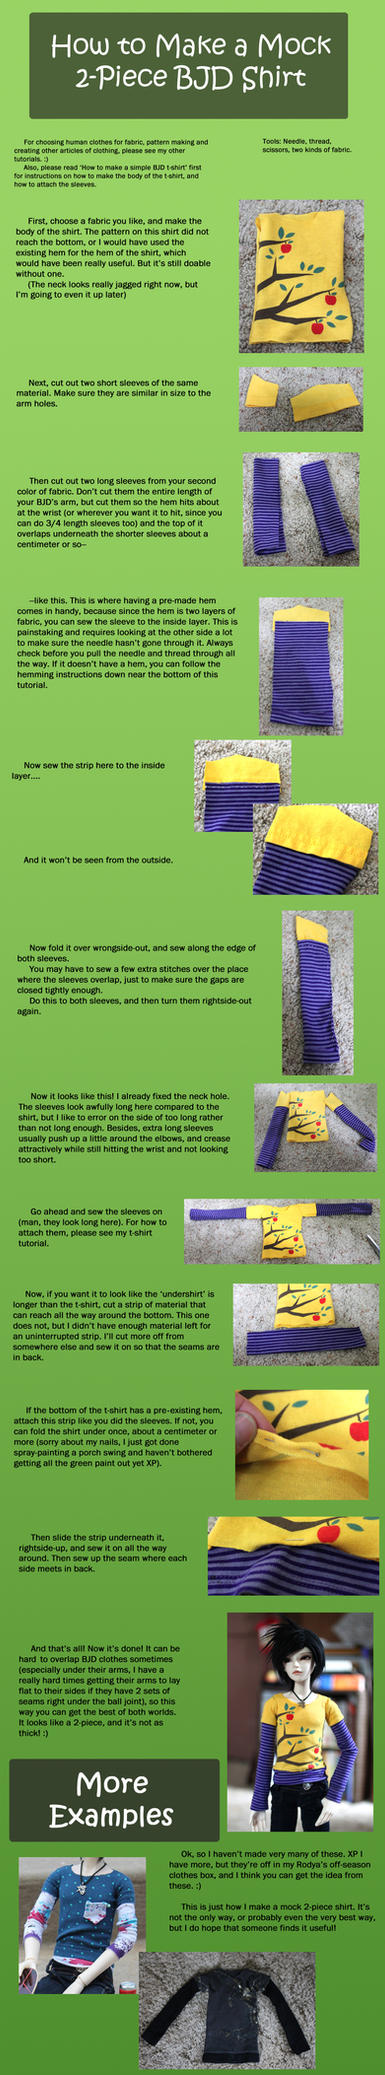 Mock 2-Piece BJD Shirt Tutorial by RodianAngel